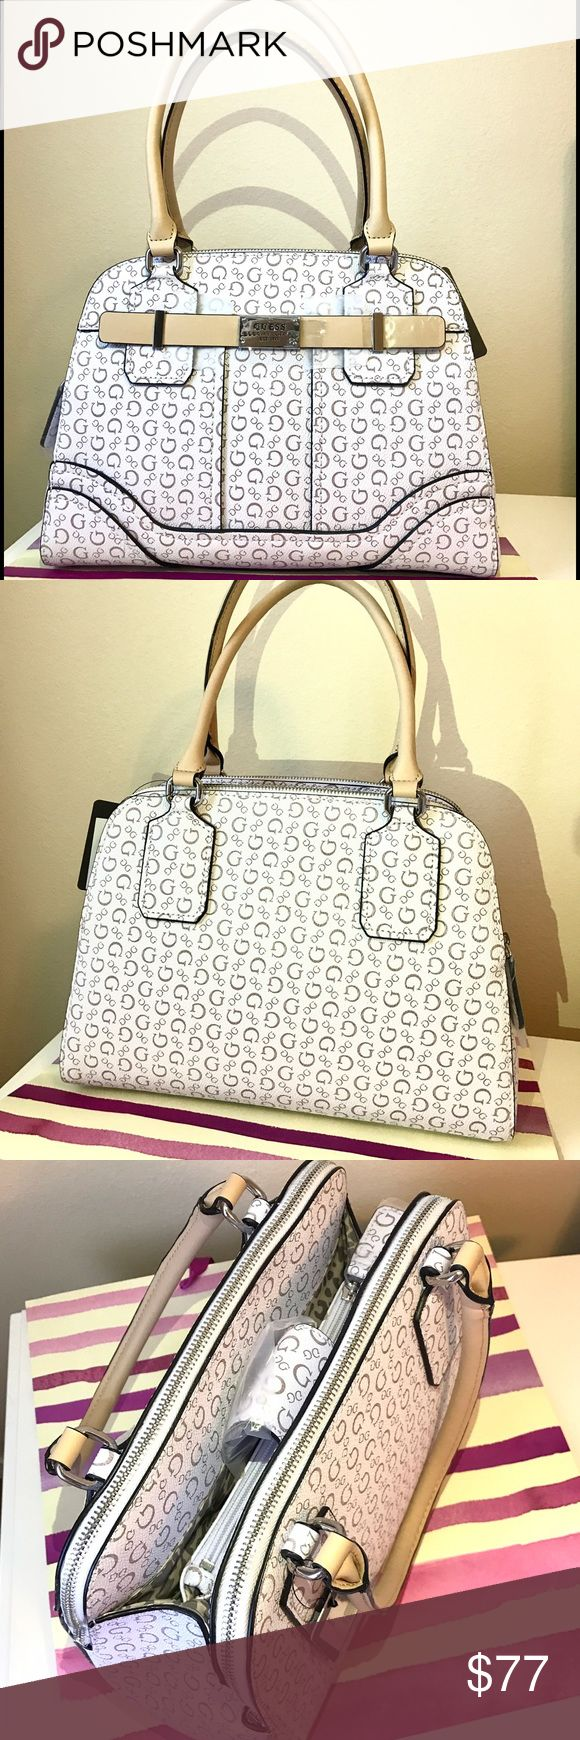 👜NWT Guess Women's Satchel (Guess Women's Bag)🌸 BRAND NEW!!! 100% AUTHENTIC! White Guess Women's Satchel with famous print. Very practical (has lots of pockets) and at the same time very glamorous and stylish!👜✨👌Has original Guess tags and packaging. For sure this bag will be one of your favorite!😉 Guess Bags Satchels